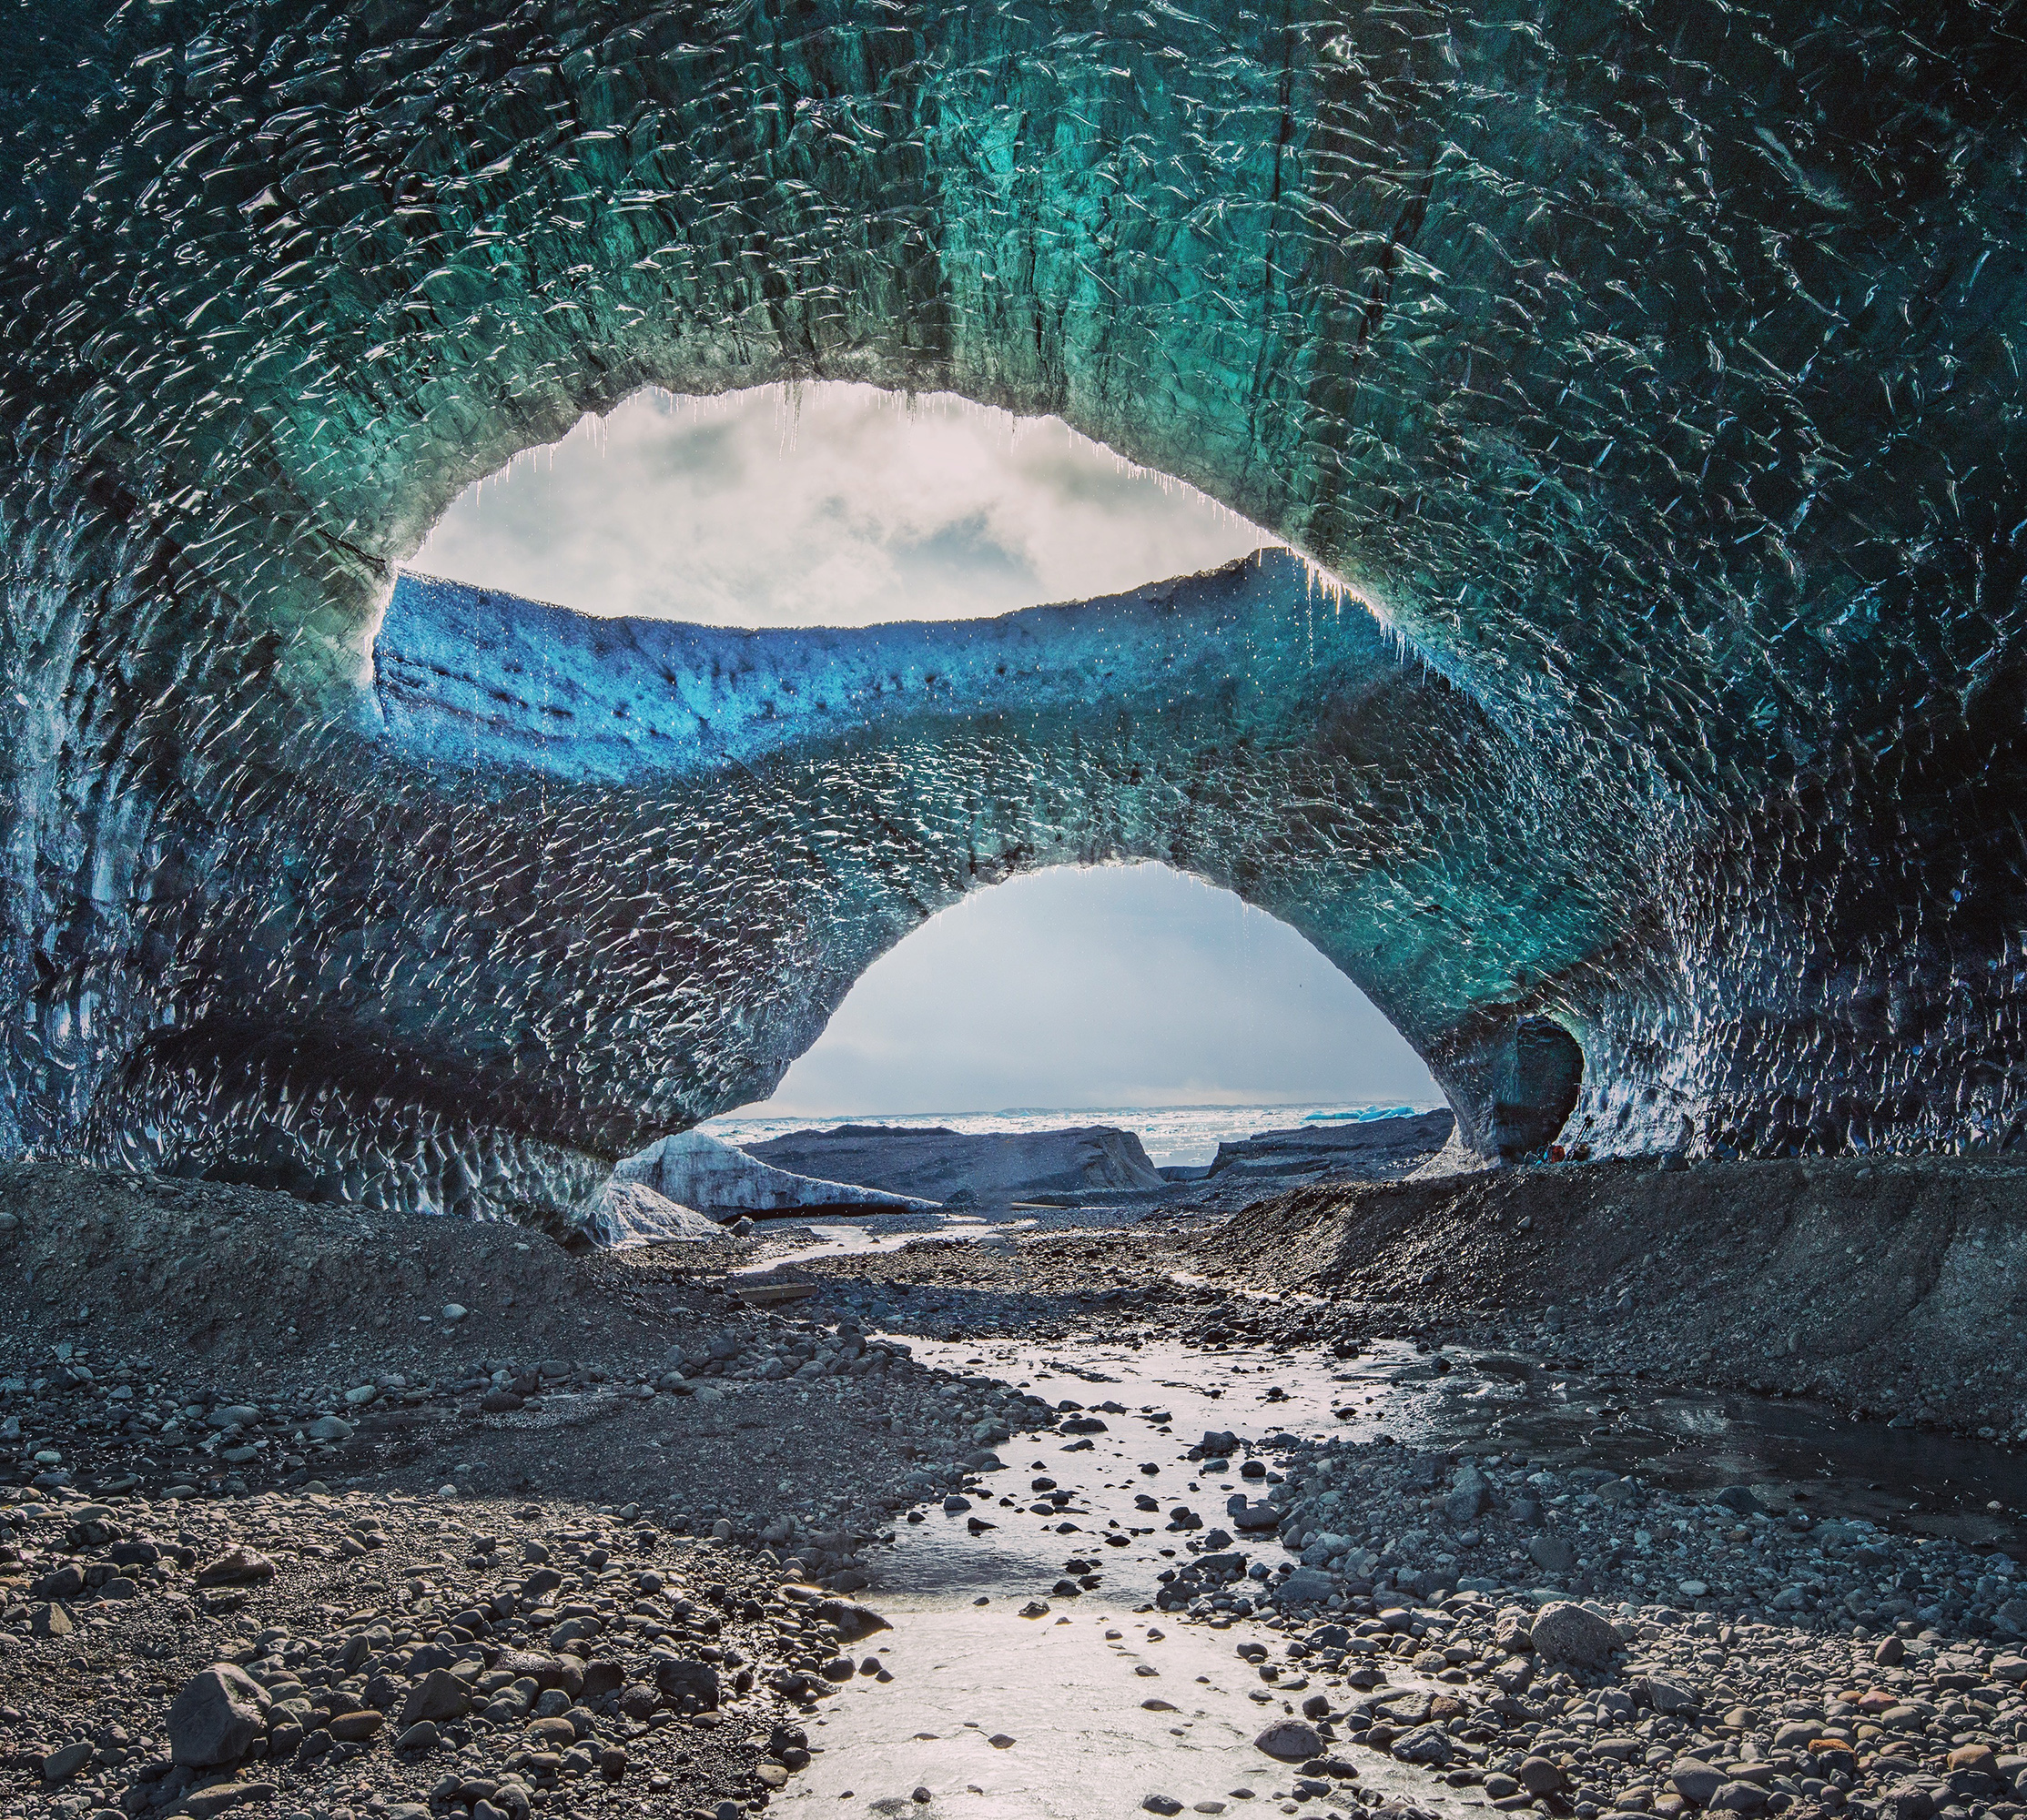 Giant ice cave in Iceland